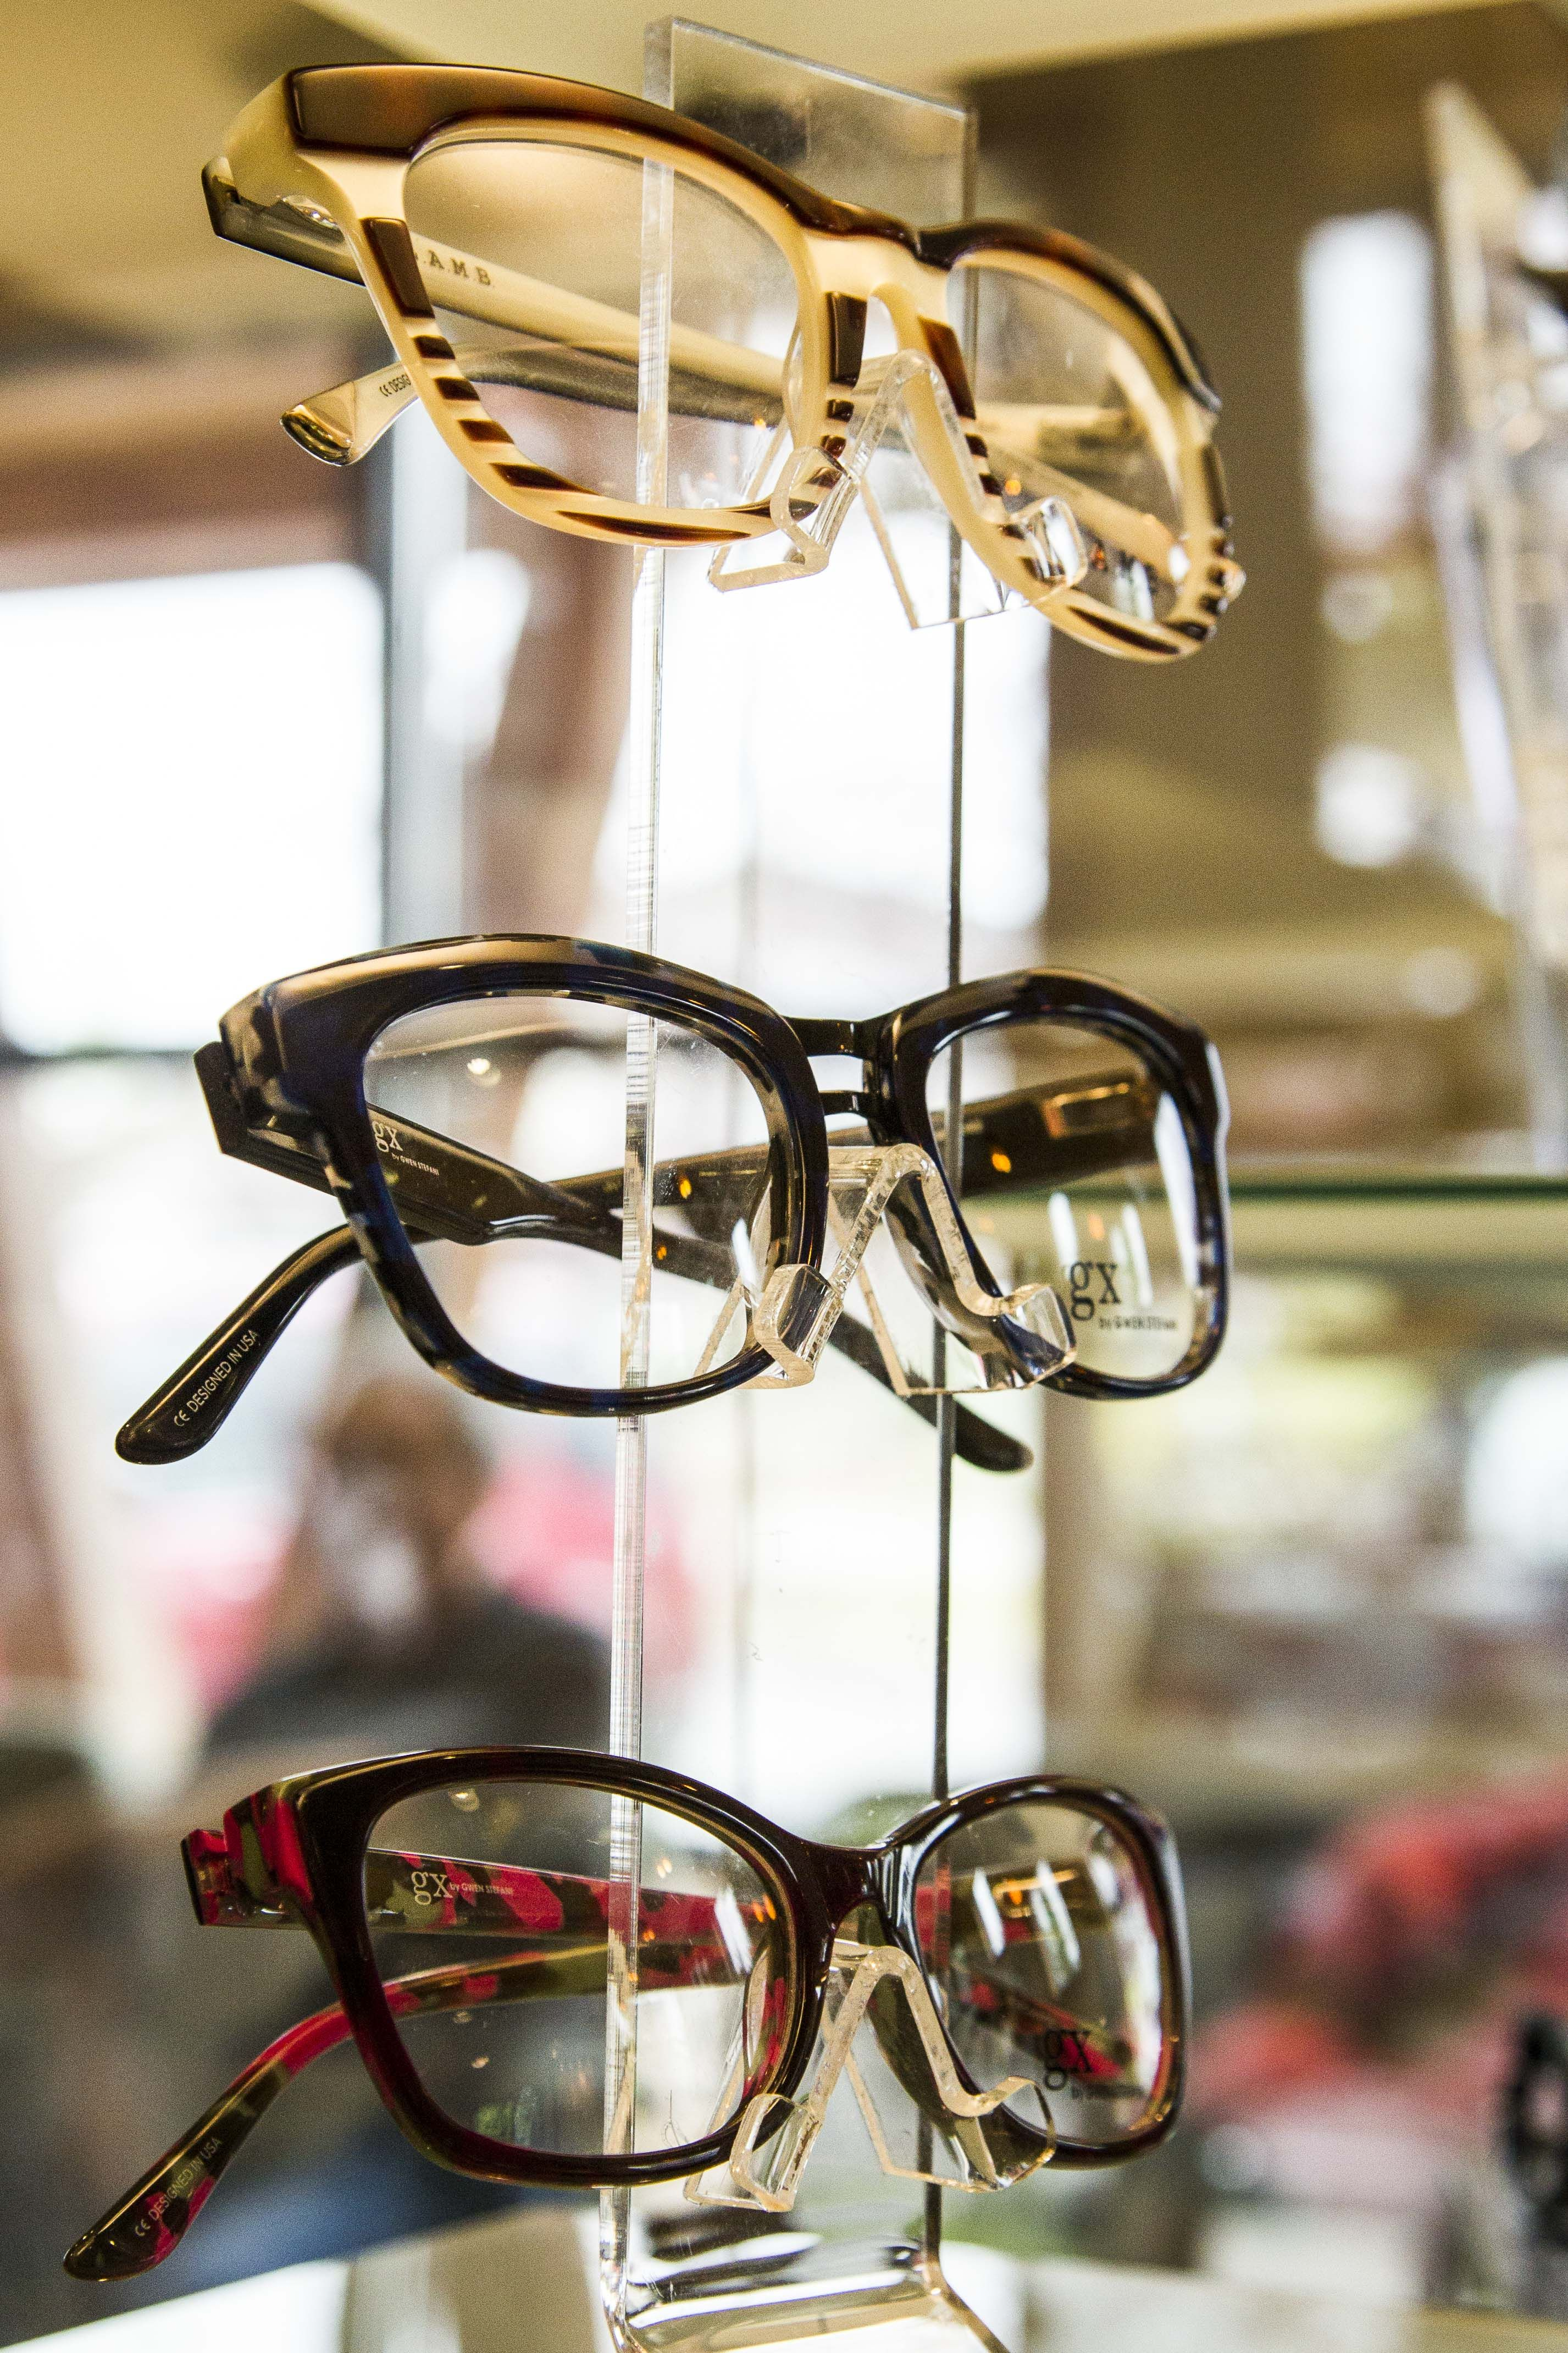 78d6c72d95 Cascadia Eye s online eyewear store (and our Mt. Vernon optical shop) now  features Gwen Stefani s frames and sunglasses - L.A.M.B. and GX brands!